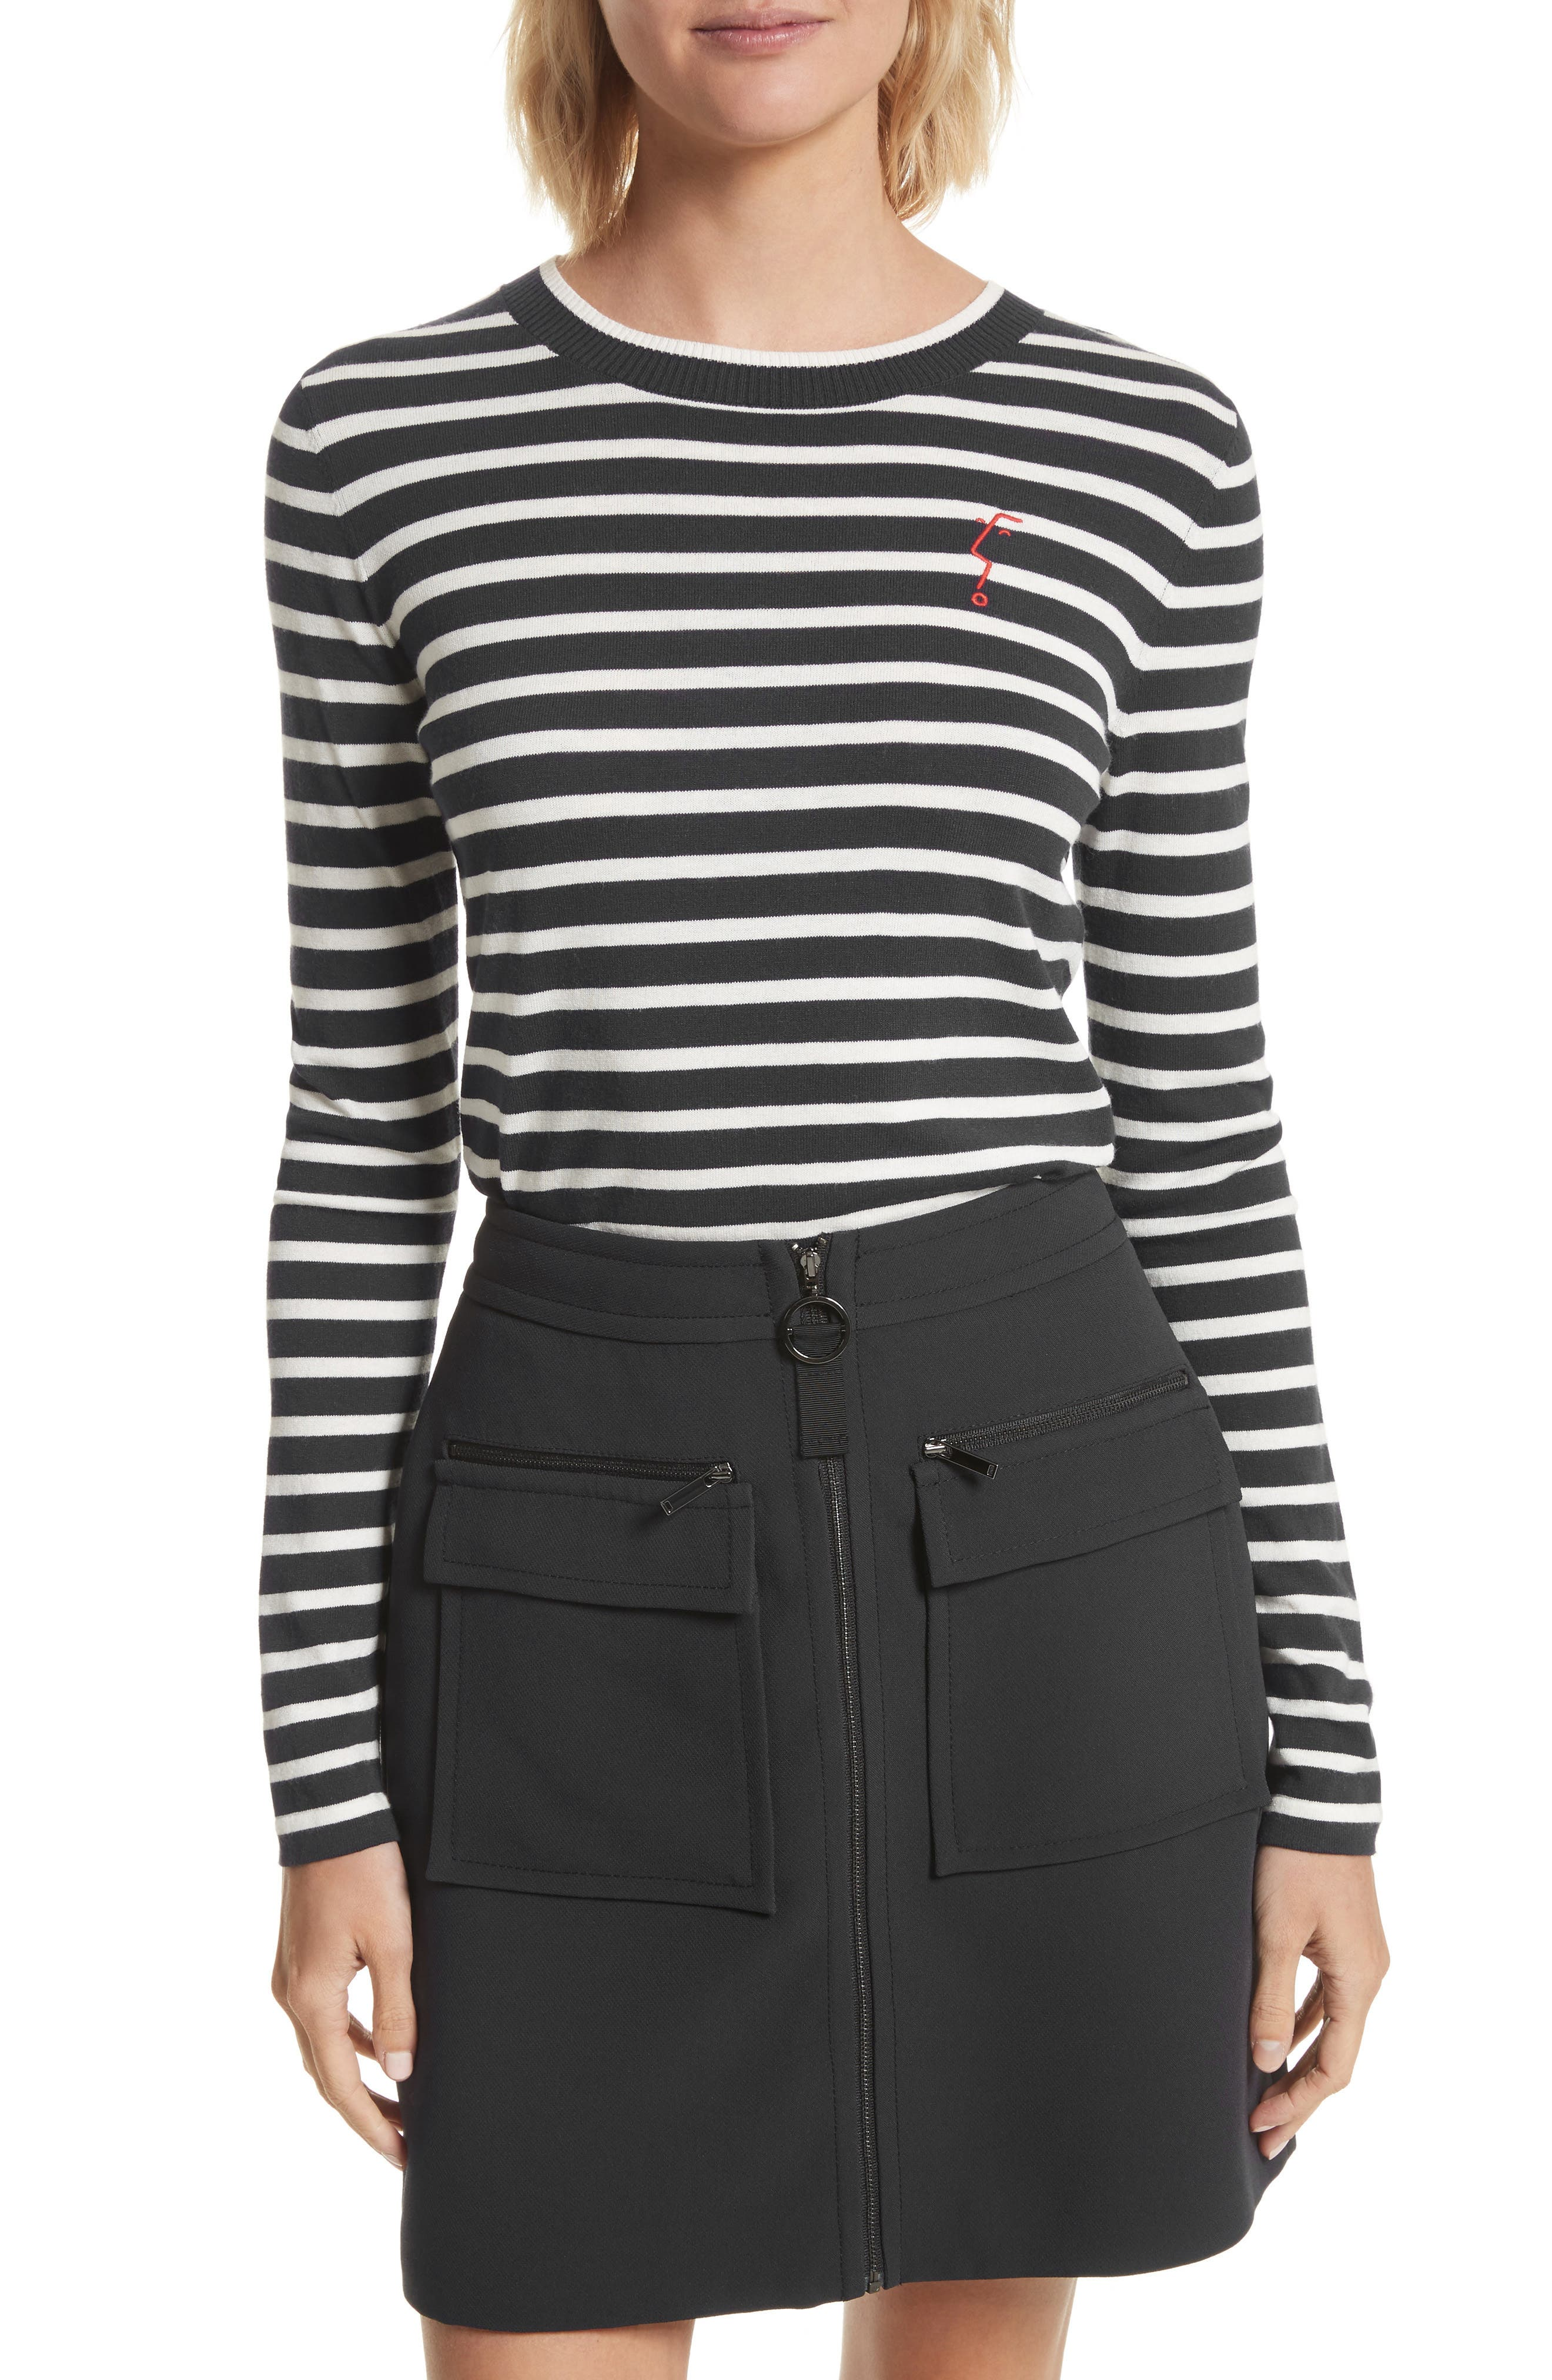 GREY Jason Wu Face Embroidered Stripe Knit Top